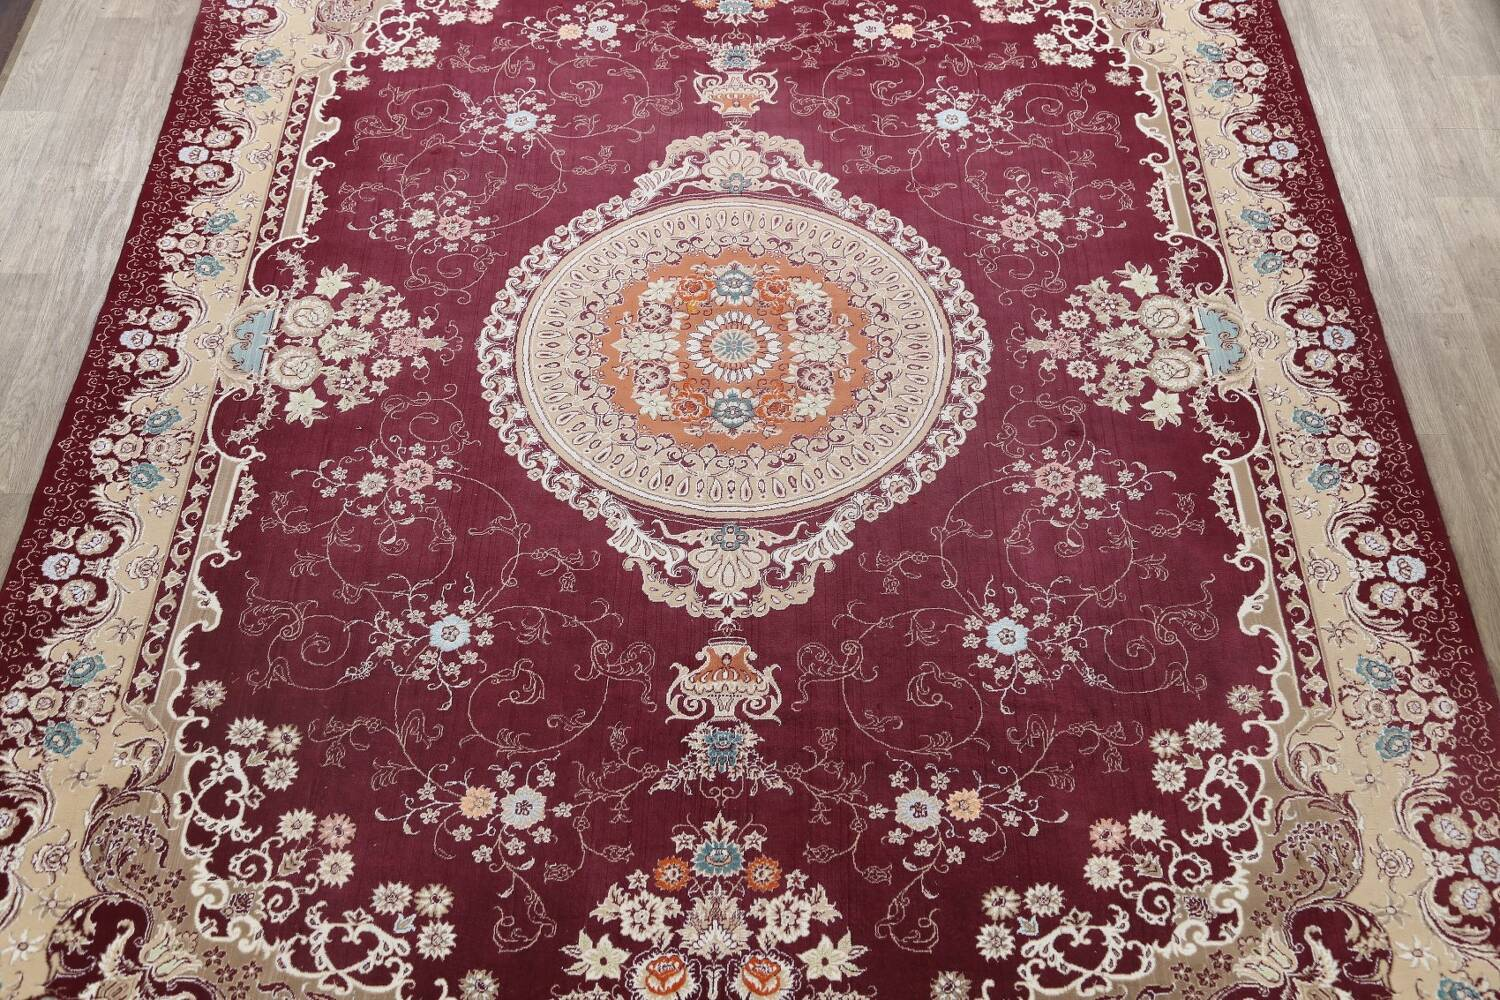 Floral Aubusson Oriental Area Rug 10x13 image 3